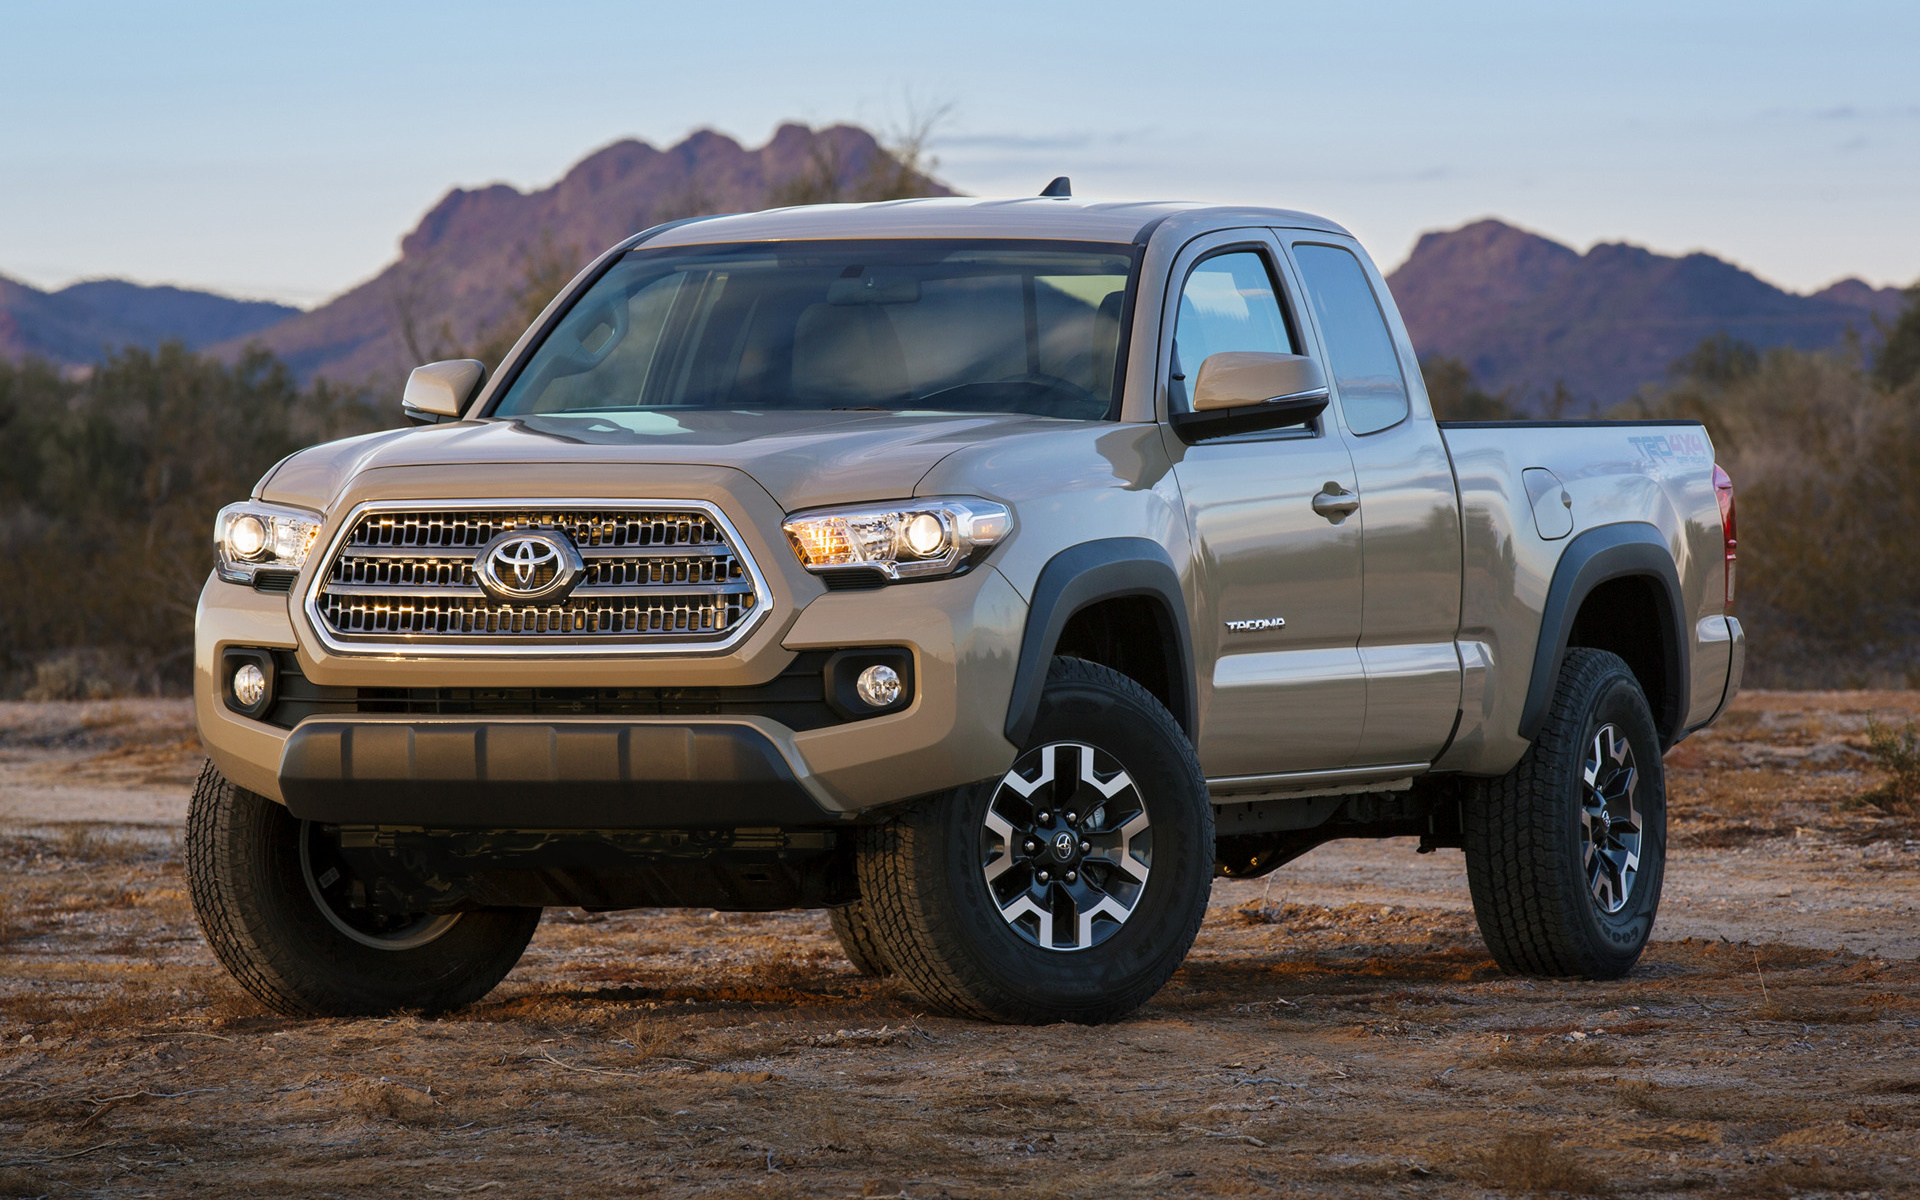 2016 Toyota Tacoma Access Cab >> Toyota Tacoma TRD Off-Road Access Cab (2016) Wallpapers and HD Images - Car Pixel